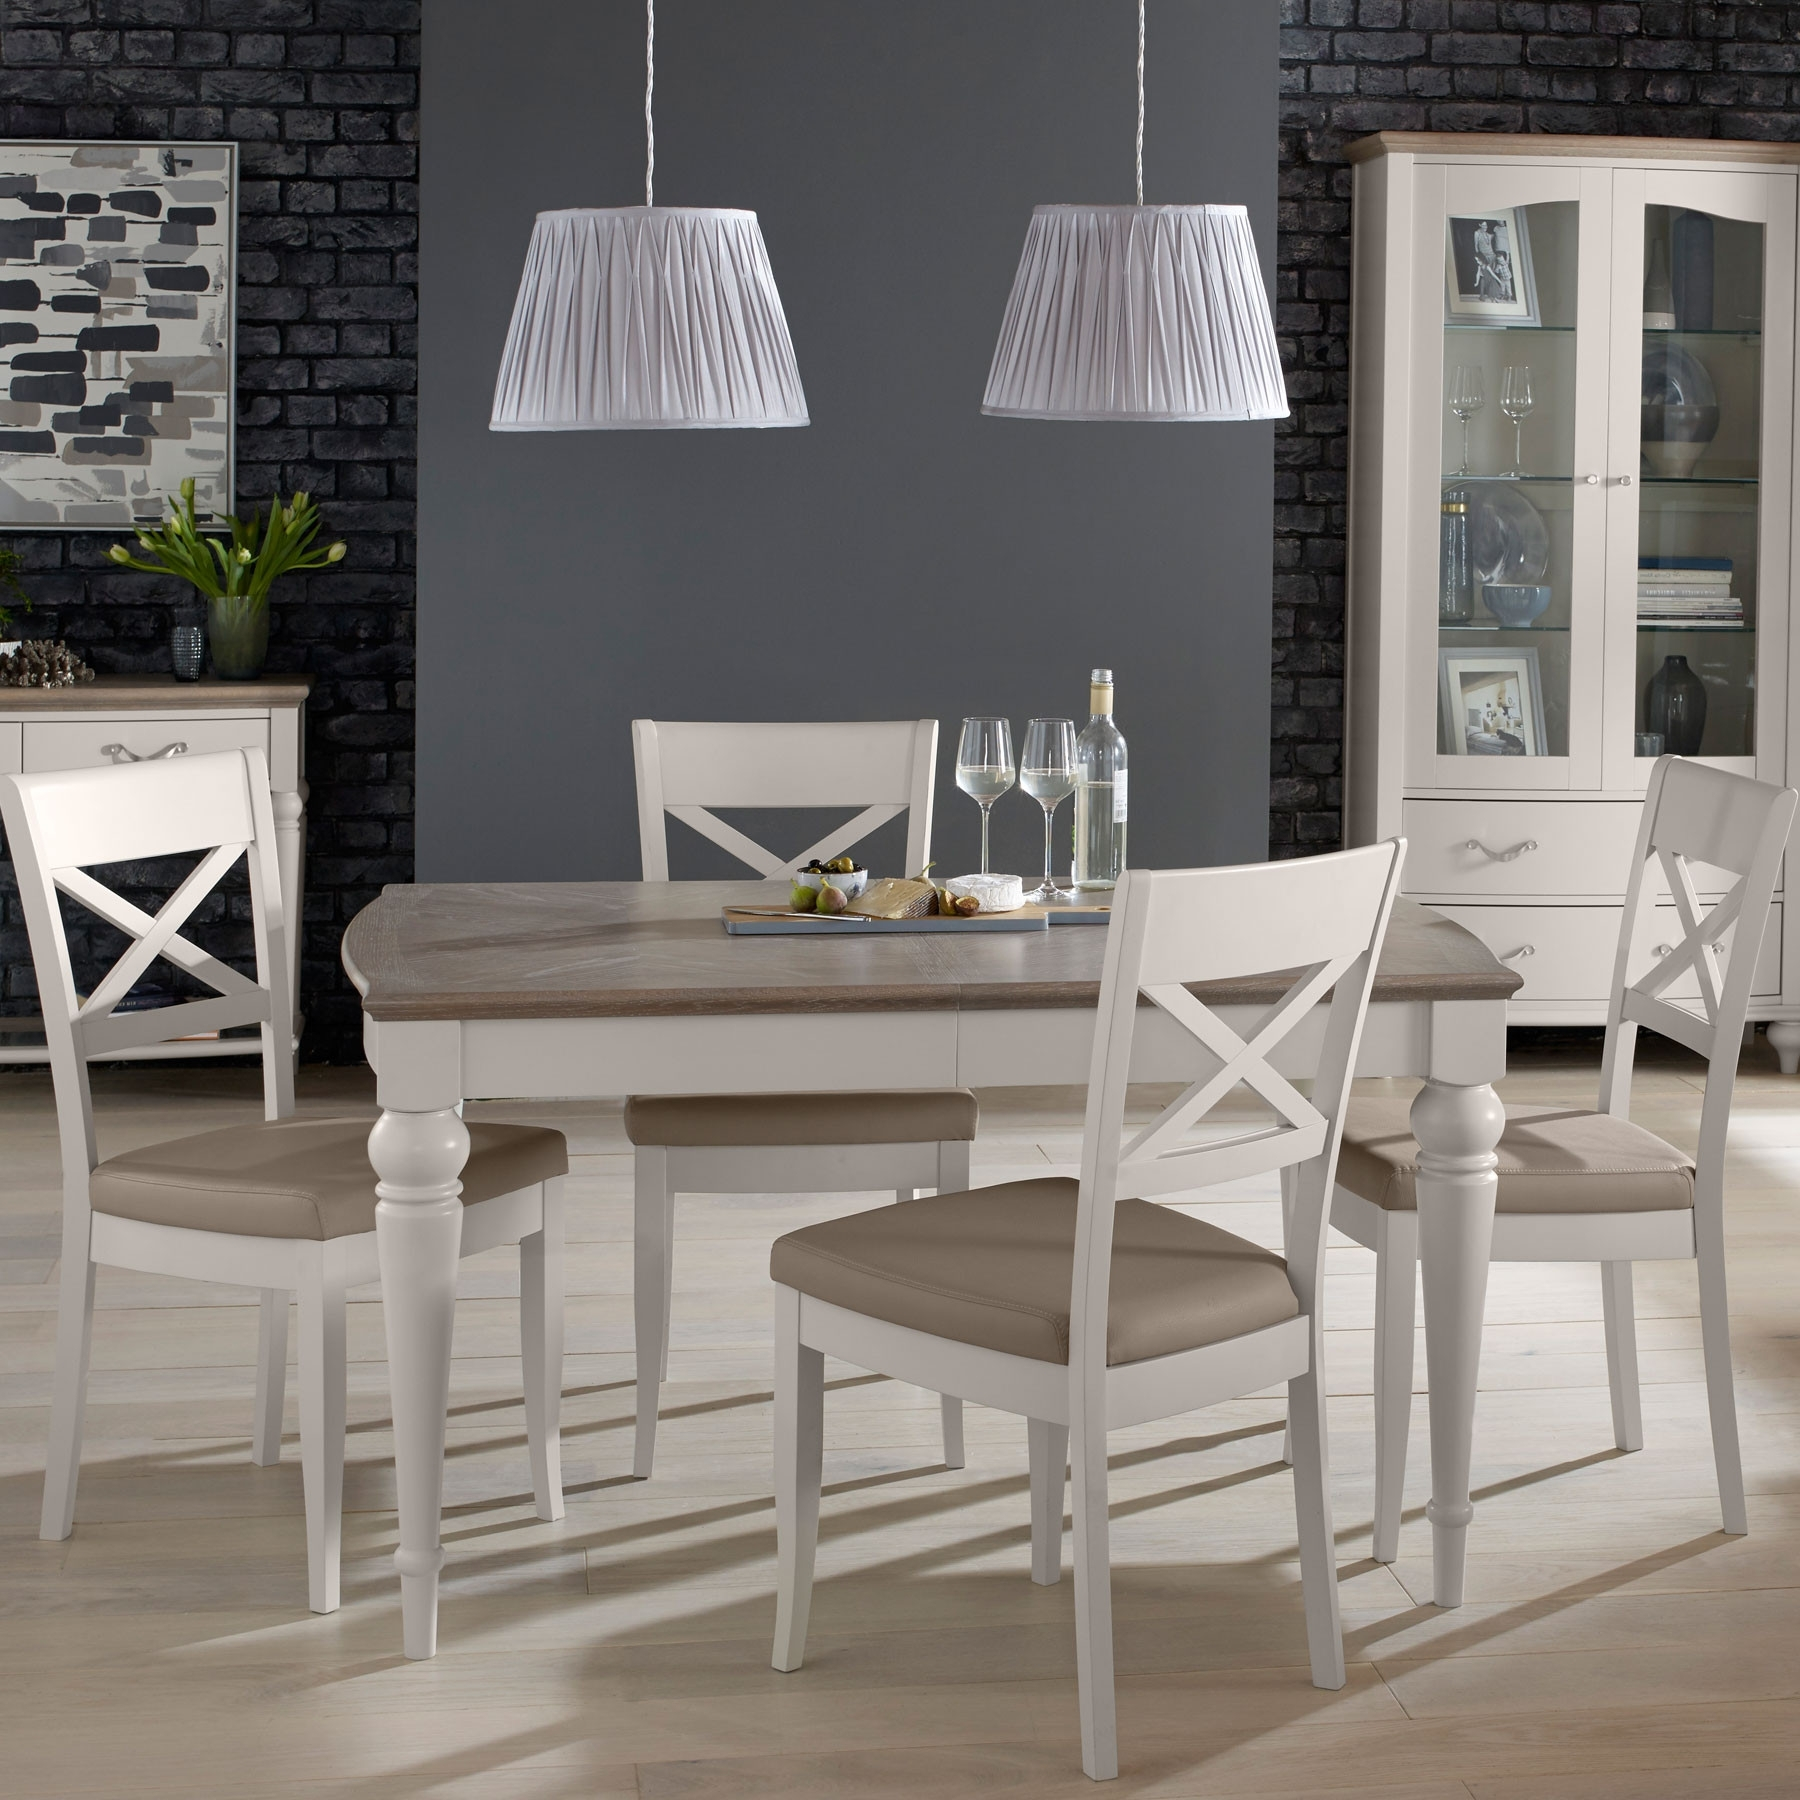 Small Extending Dining Tables And 4 Chairs With Regard To Most Up To Date Hampton Small Extending Dining Table & 4 Dining Chairs (View 5 of 25)